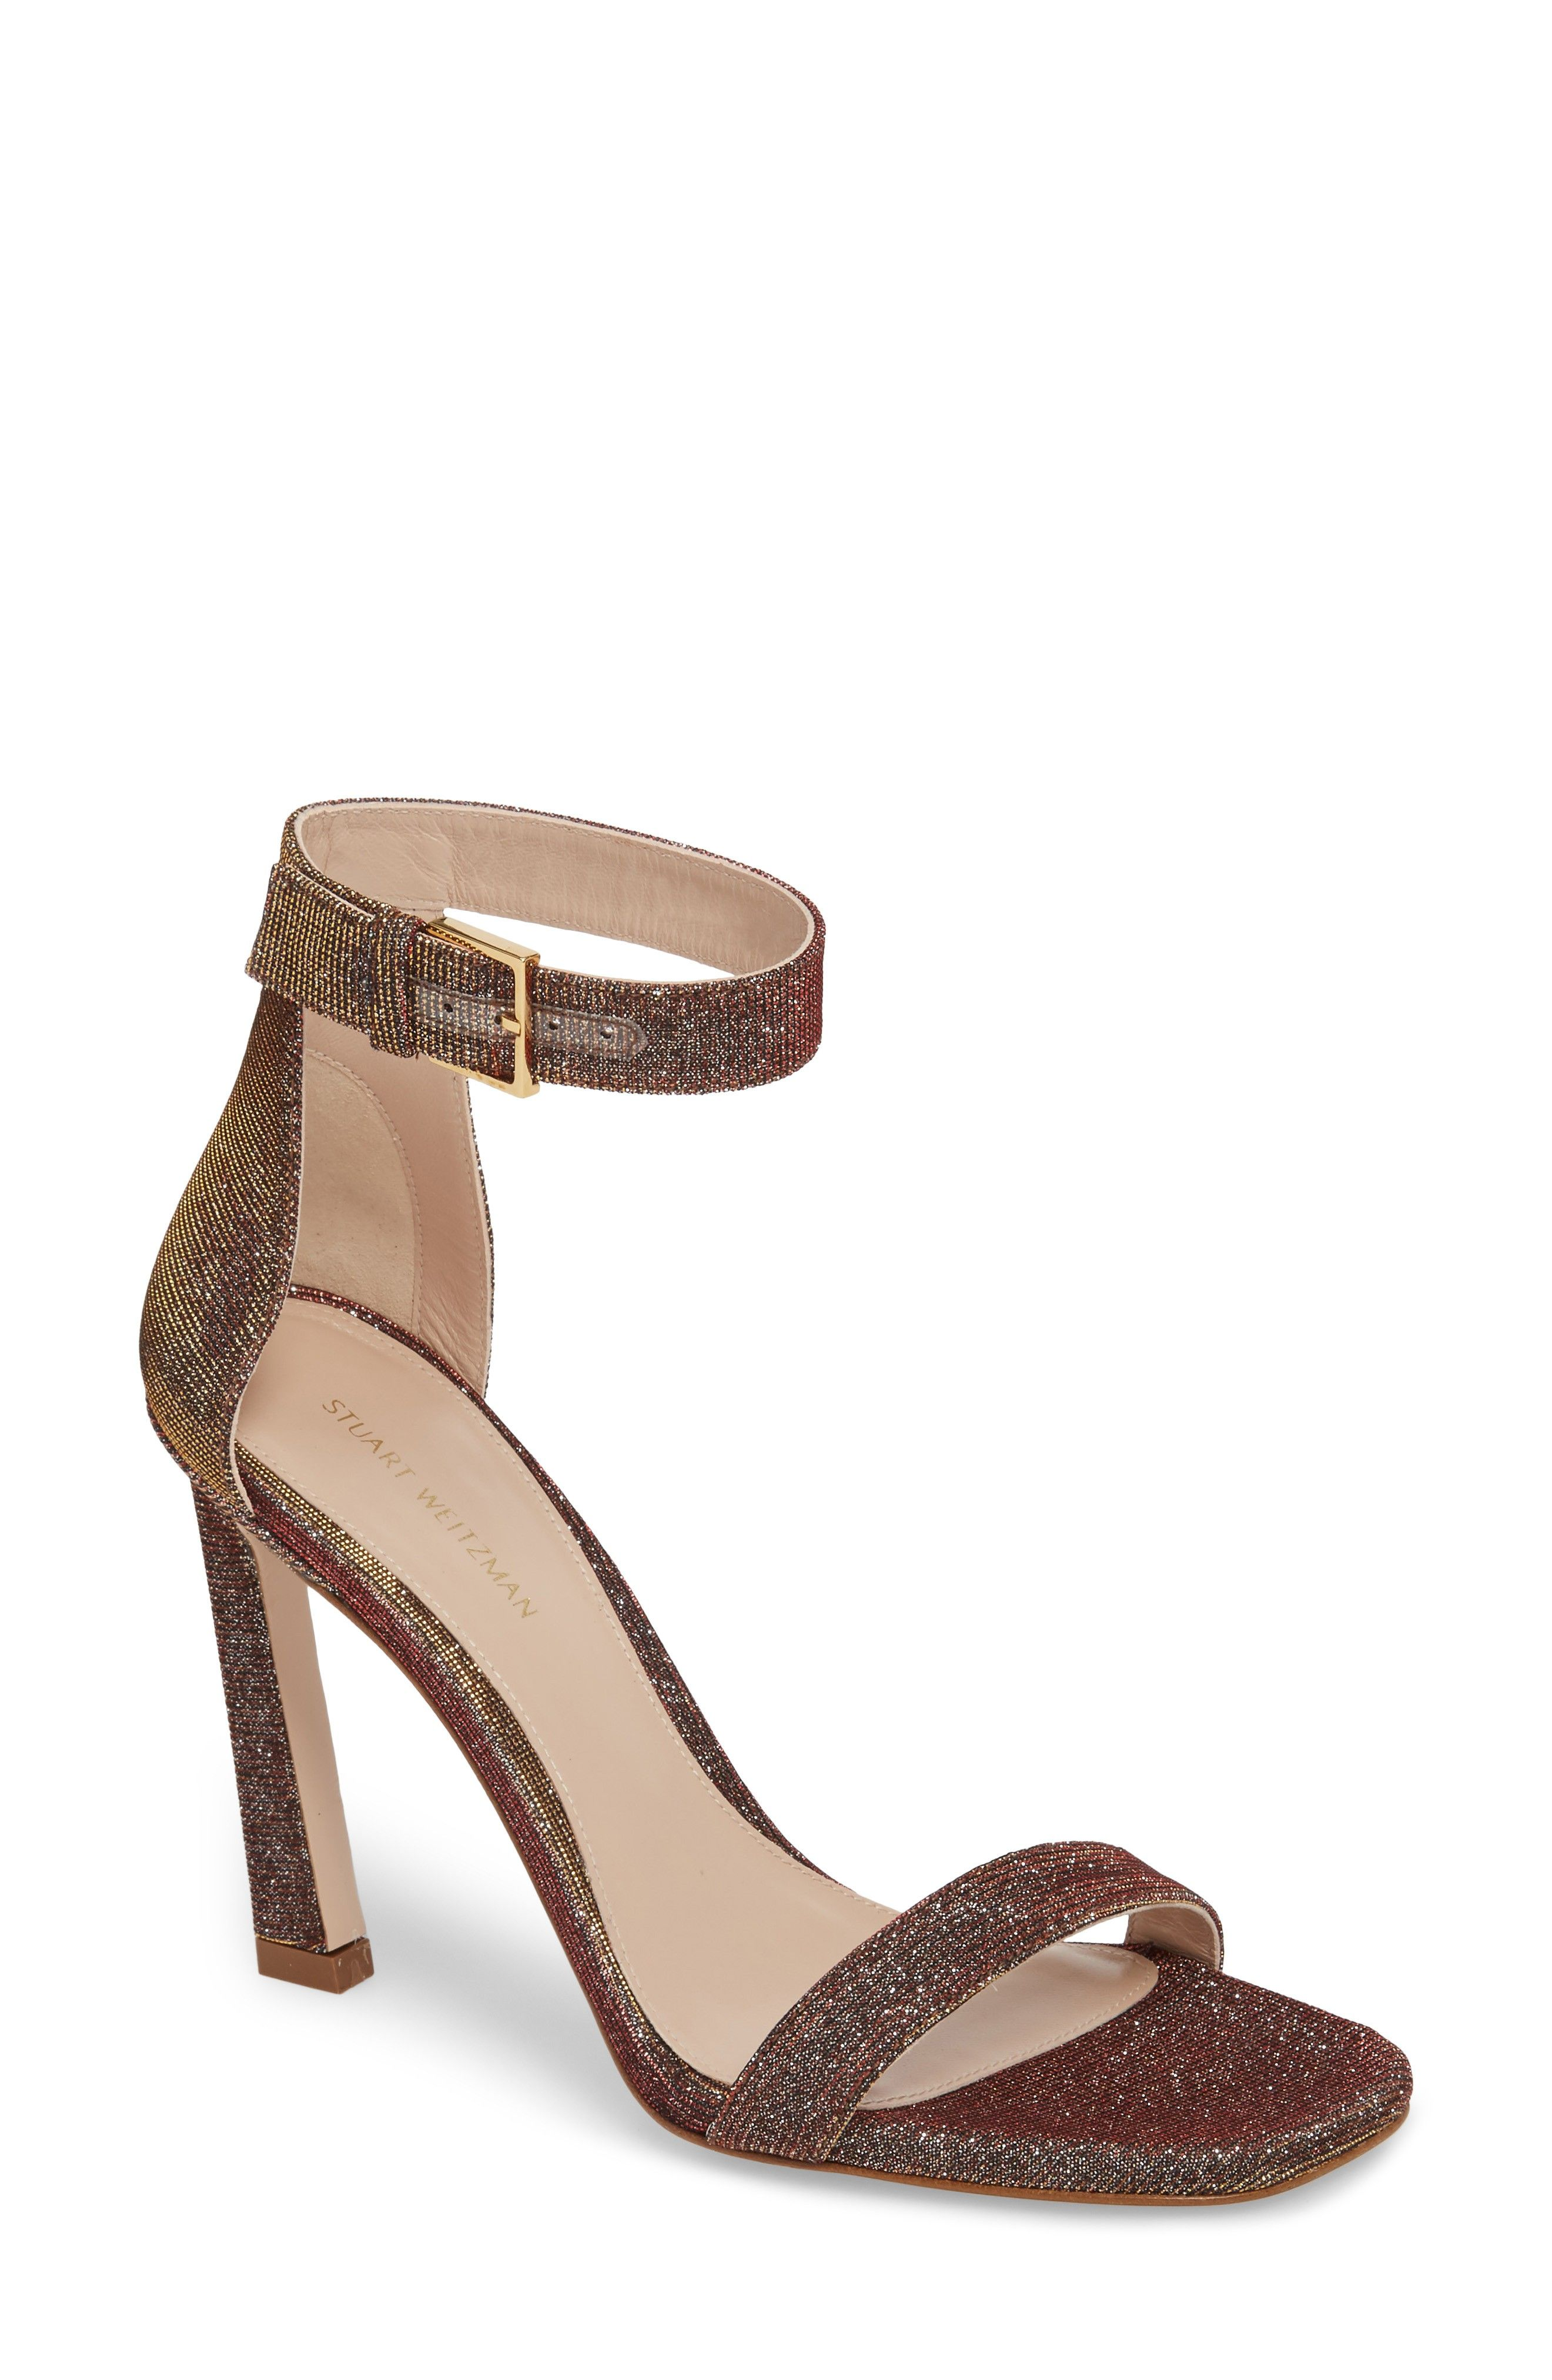 Sast Cheap Price Square nudist sandals - Brown Stuart Weitzman Visit New Recommend Online Manchester Many Styles rN8lVqS1H